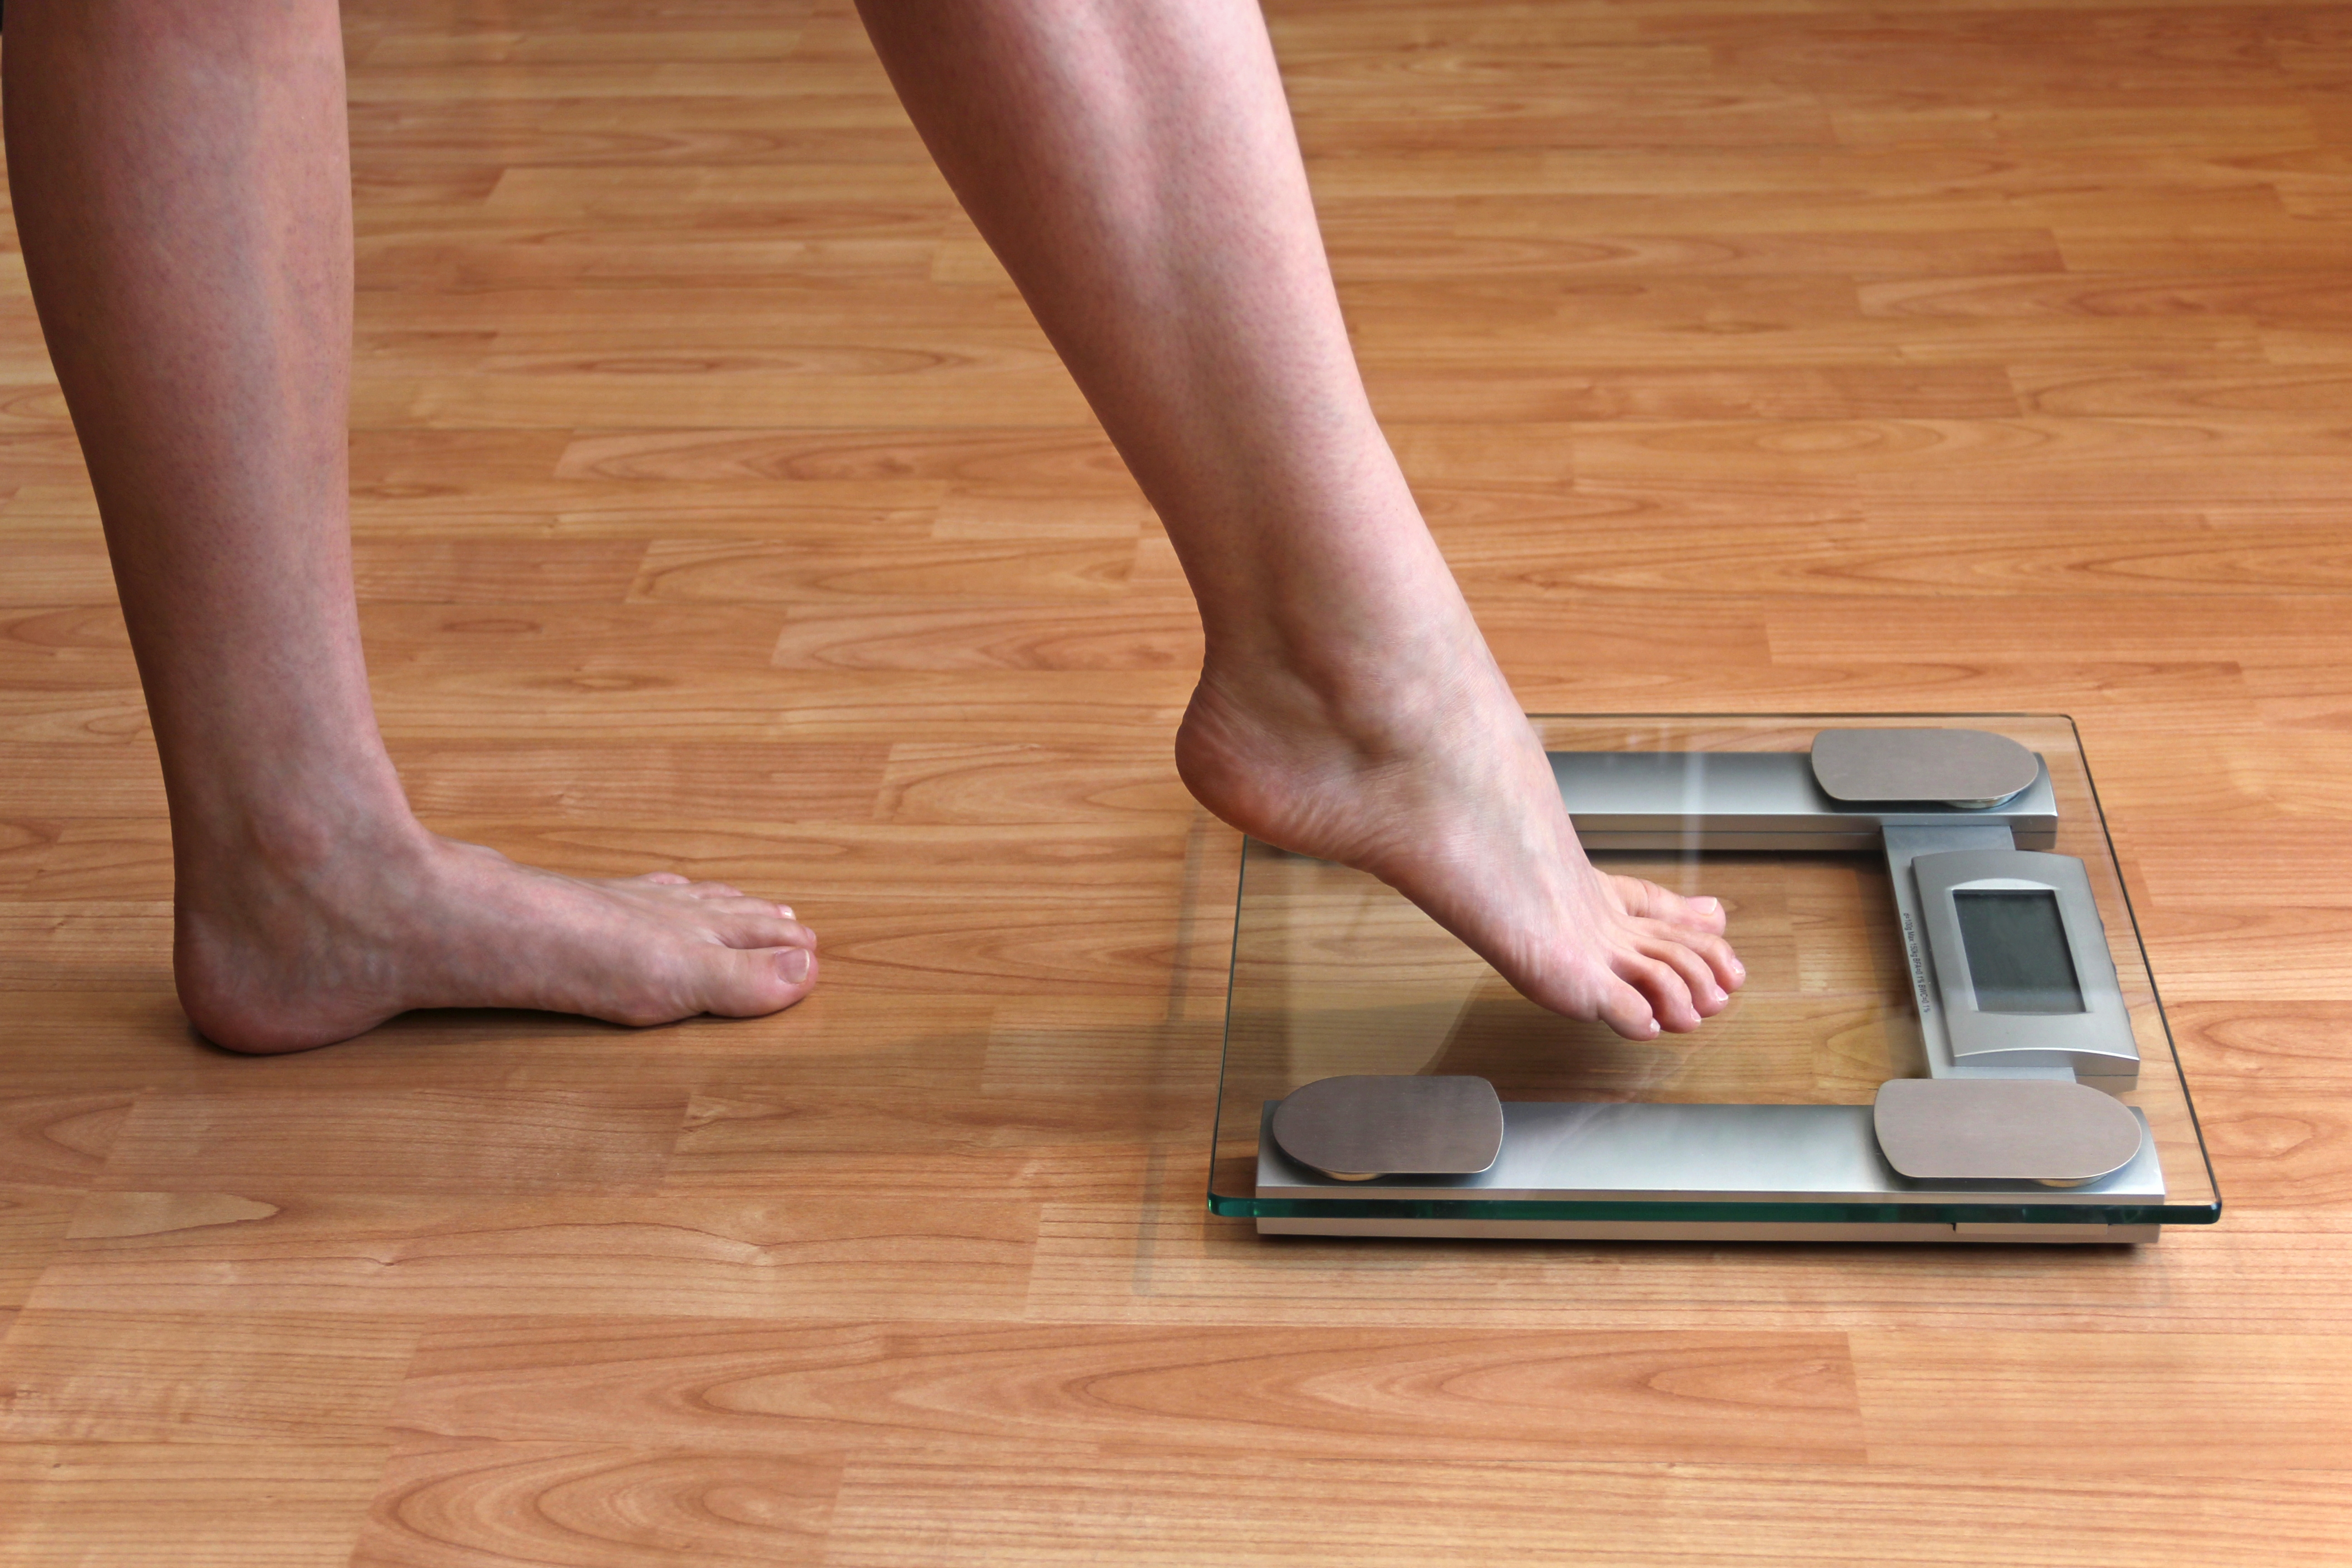 Stepping on the scales